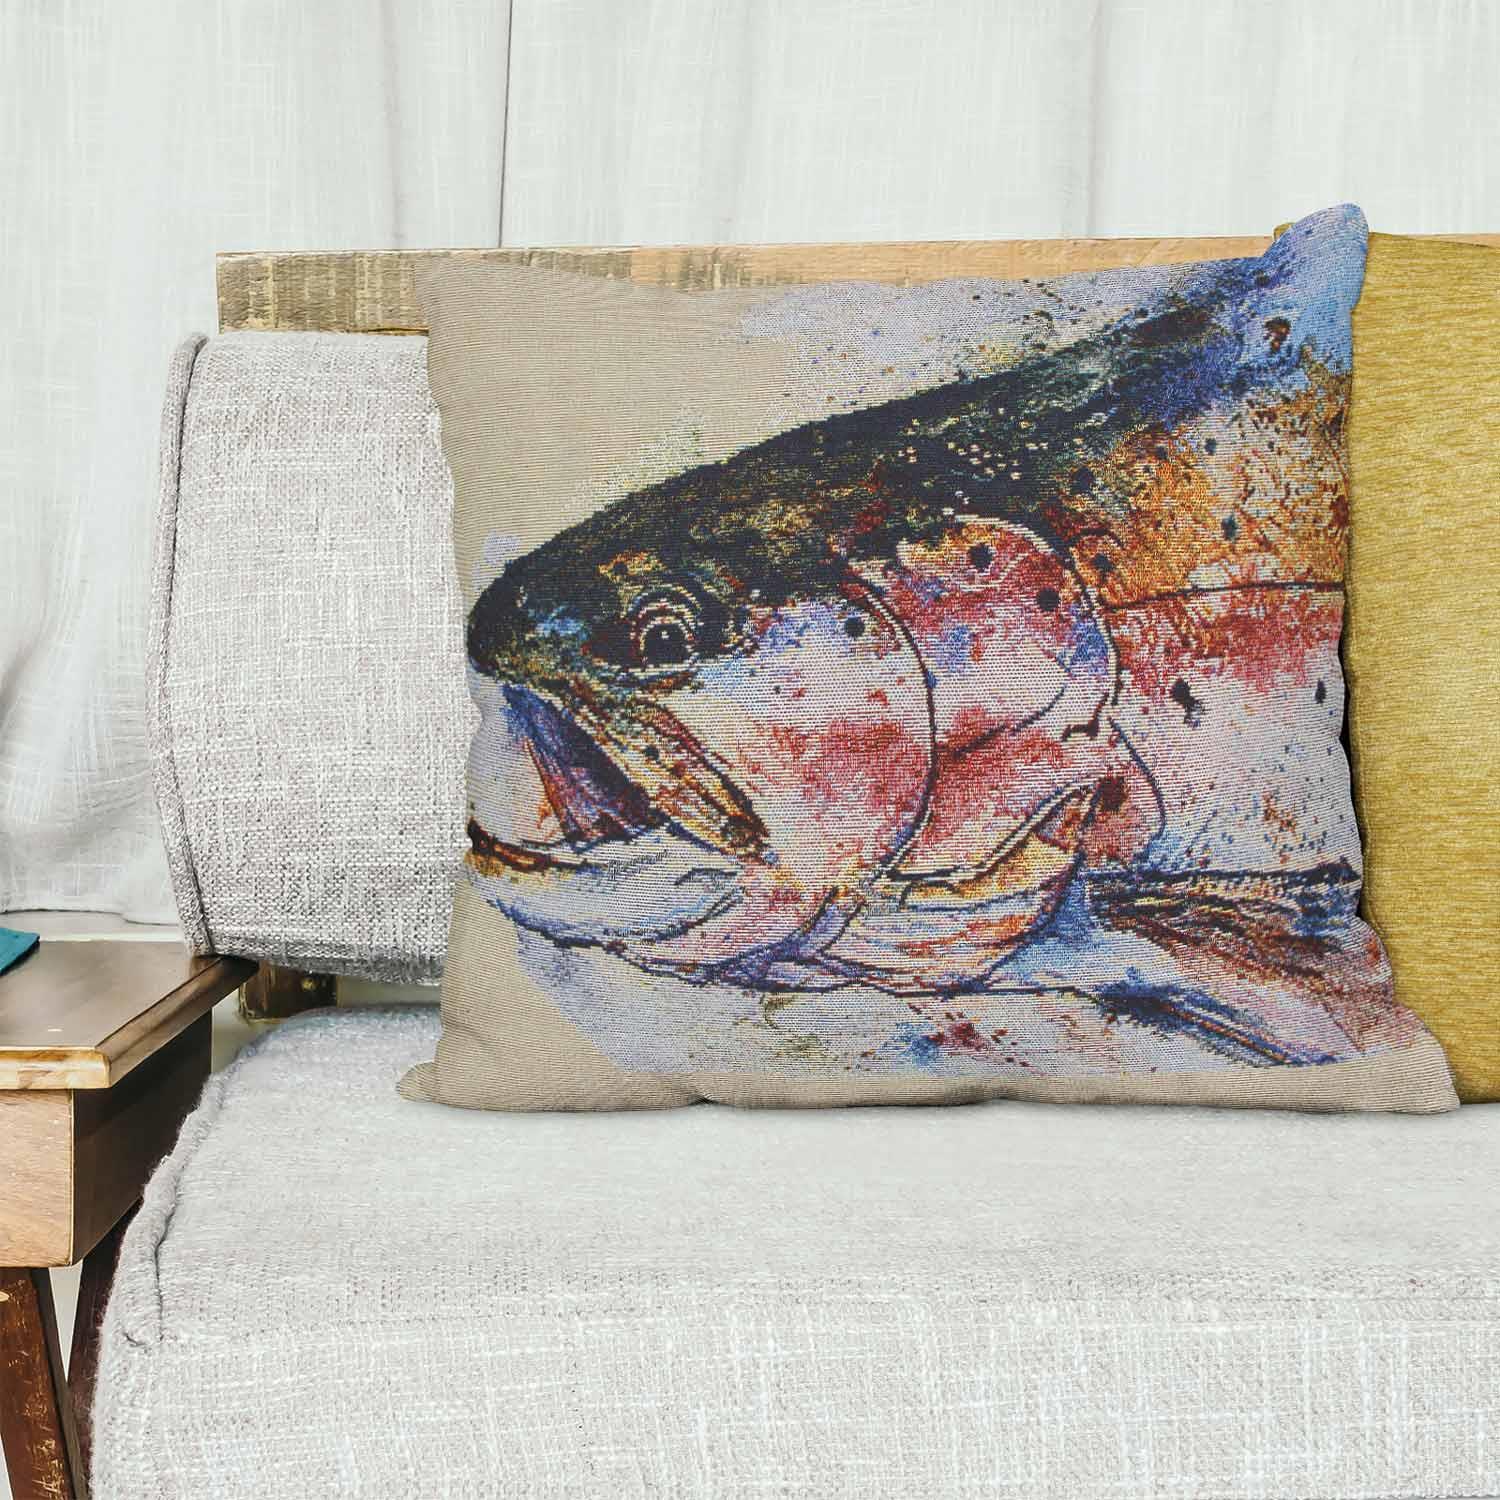 Tapestry-Cushion-Covers-Vintage-Pillow-Cover-Collection-18-034-45cm-Filled-Cushions thumbnail 218